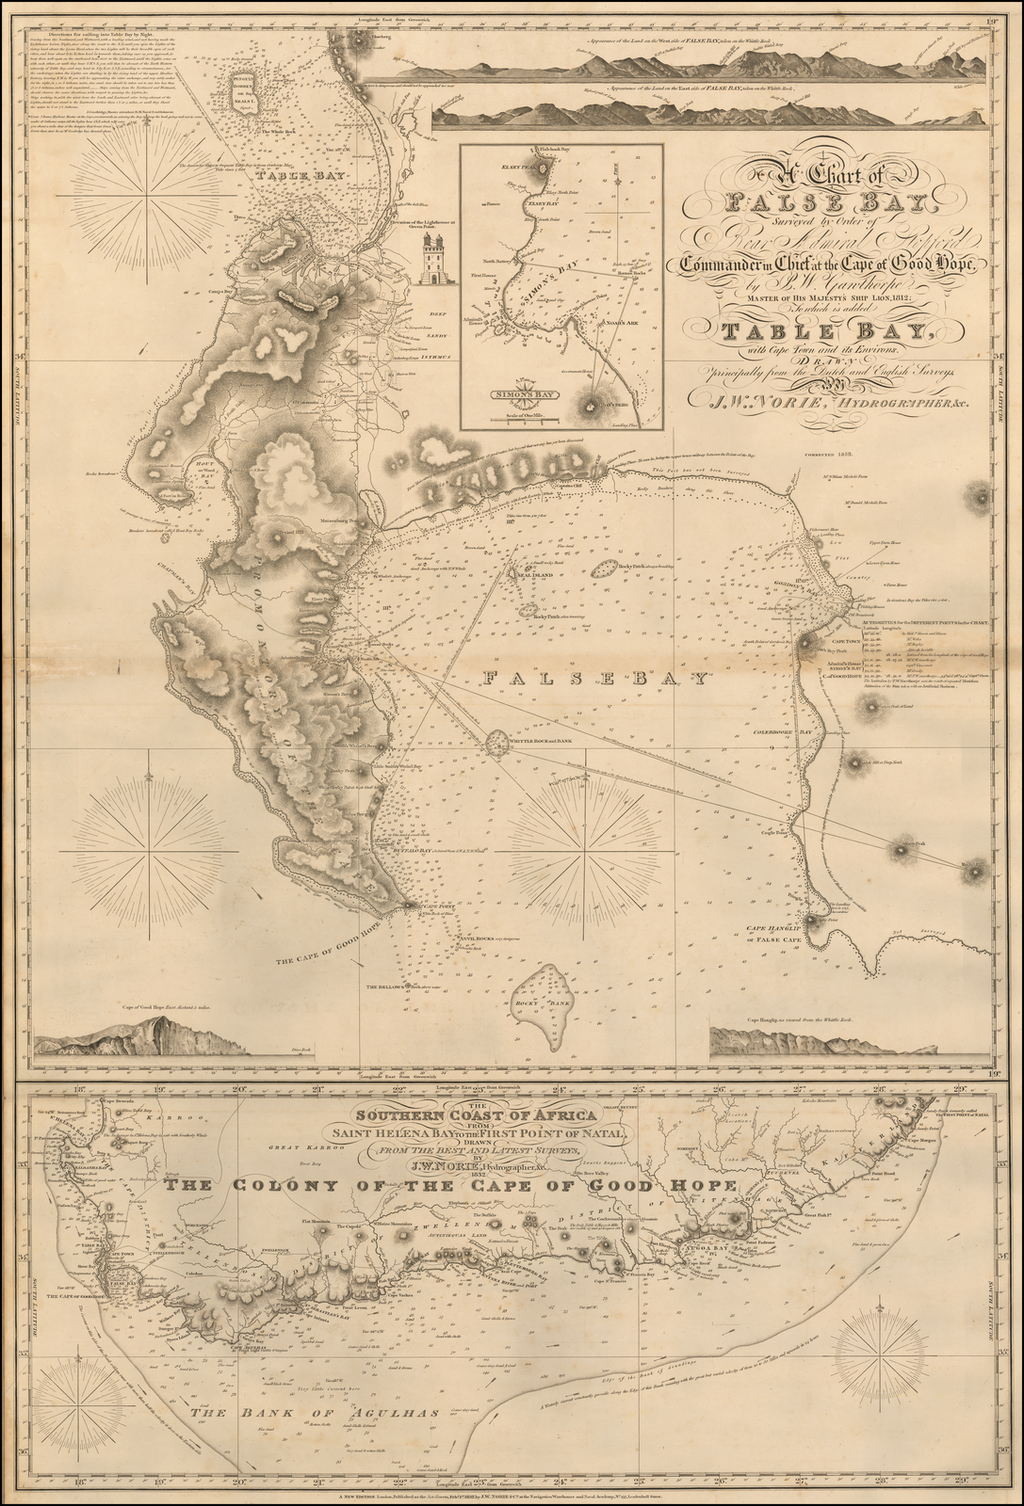 A Chart of False Bay Surveyed by Order of Rear Admiral Stopford, Commander in Chief at the Cape of Good Hope, by P. W. Gawthorpe, Master of His Majesty's Ship Lion, 1812; to which is added Table Bay, with Cape Town and Its Environs . . .  Corrected to 1853 By John William Norie